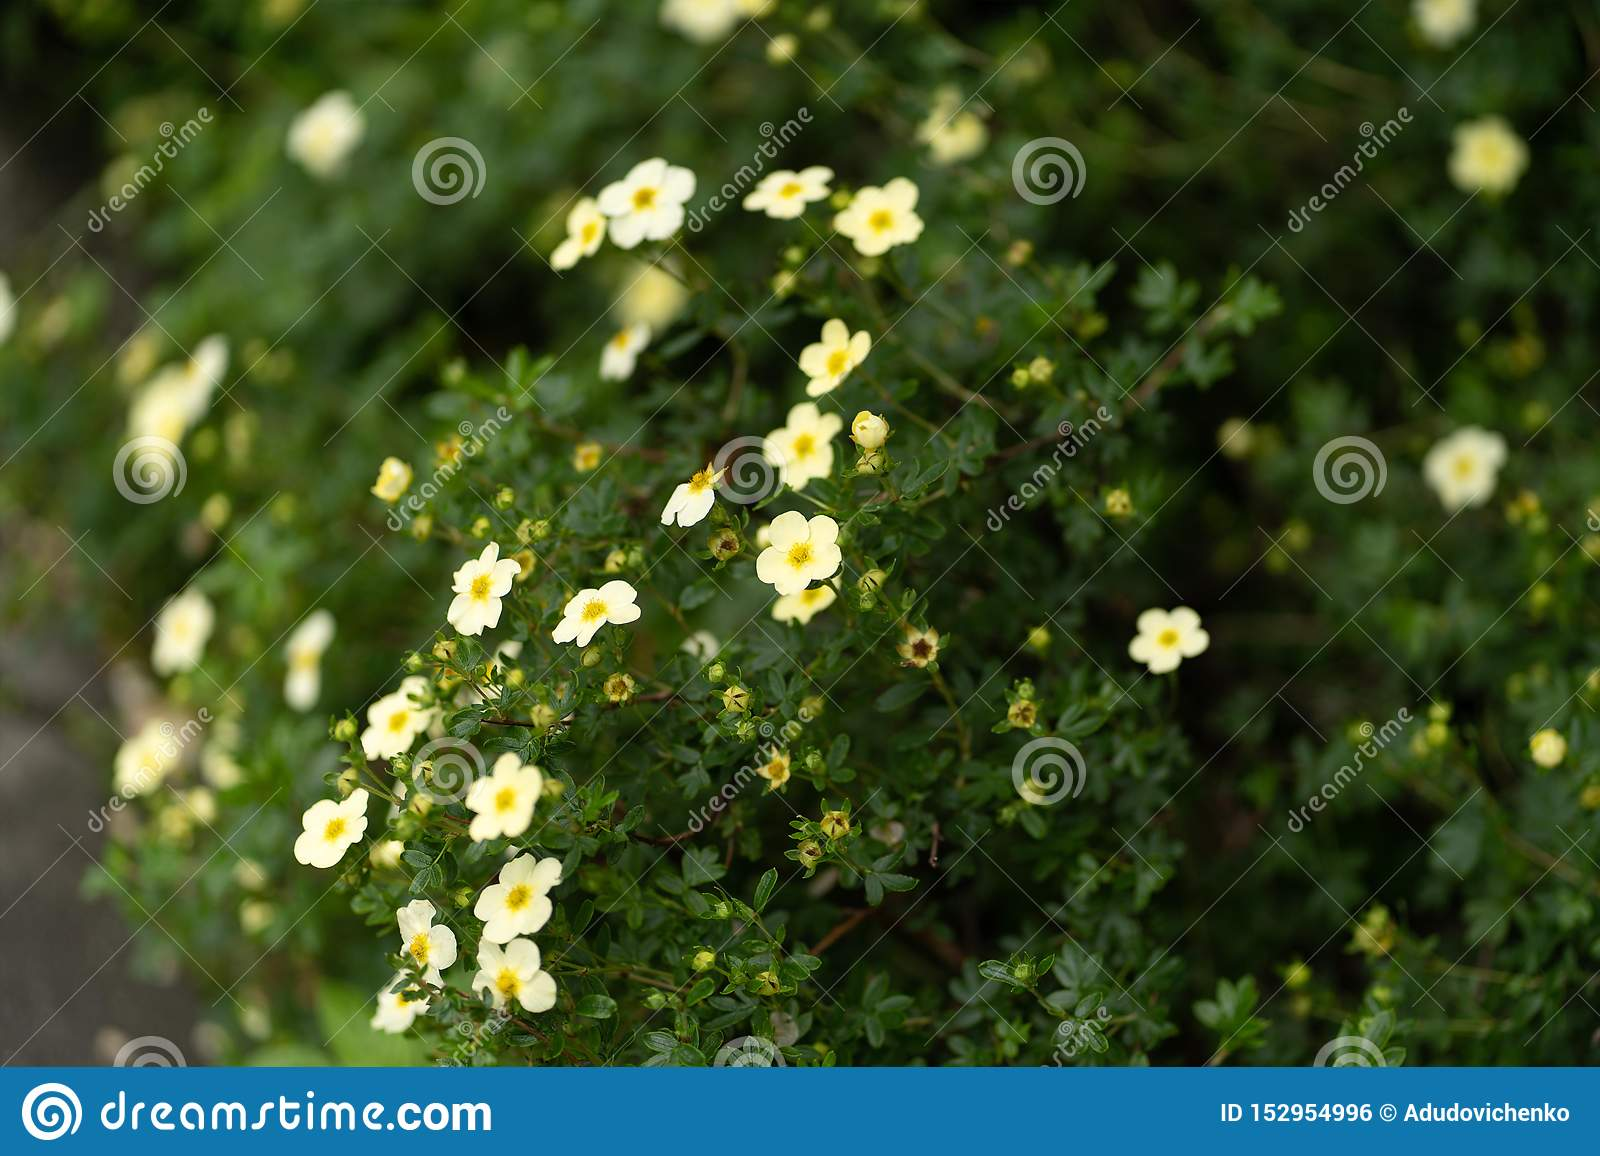 Natural forest and plants background in close up